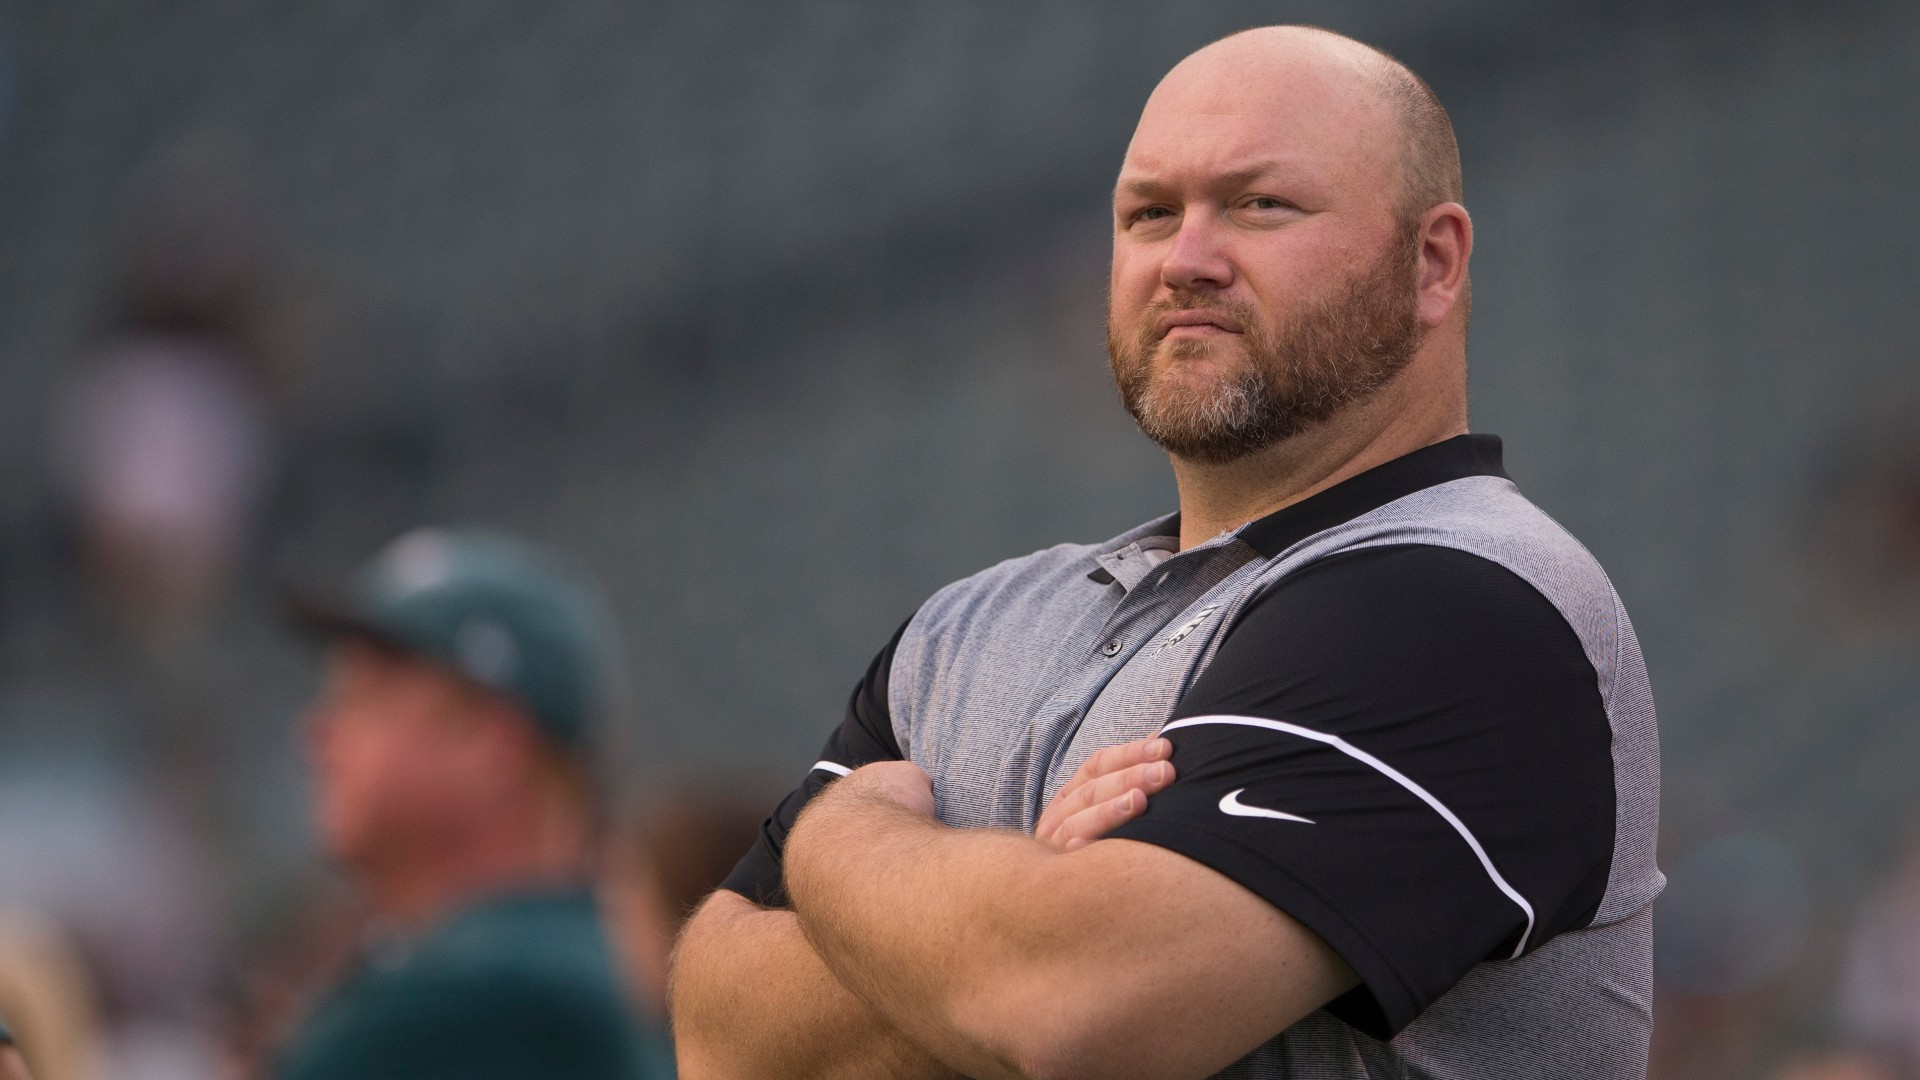 Joe Douglas Jets GM talks about Sam Darnold's deal: 'I couldn't give two s' if I see it wrong